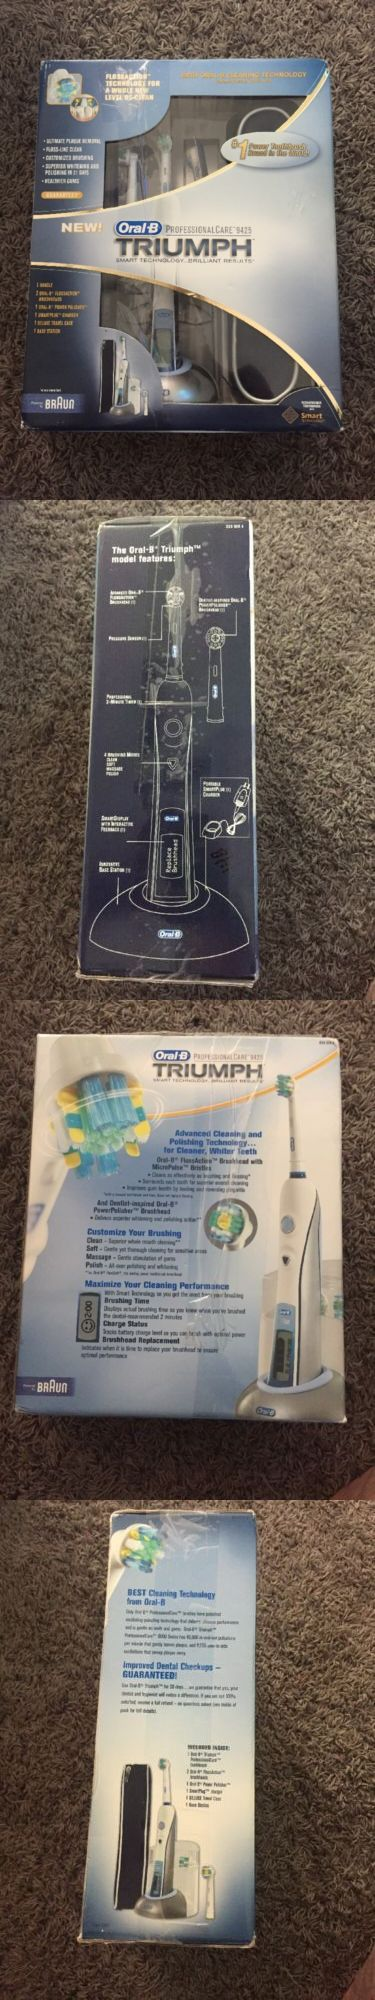 Electric Toothbrushes: Brand New Genuine Oral B Triumph Professional Care 9425 Braun -> BUY IT NOW ONLY: $79.99 on eBay!